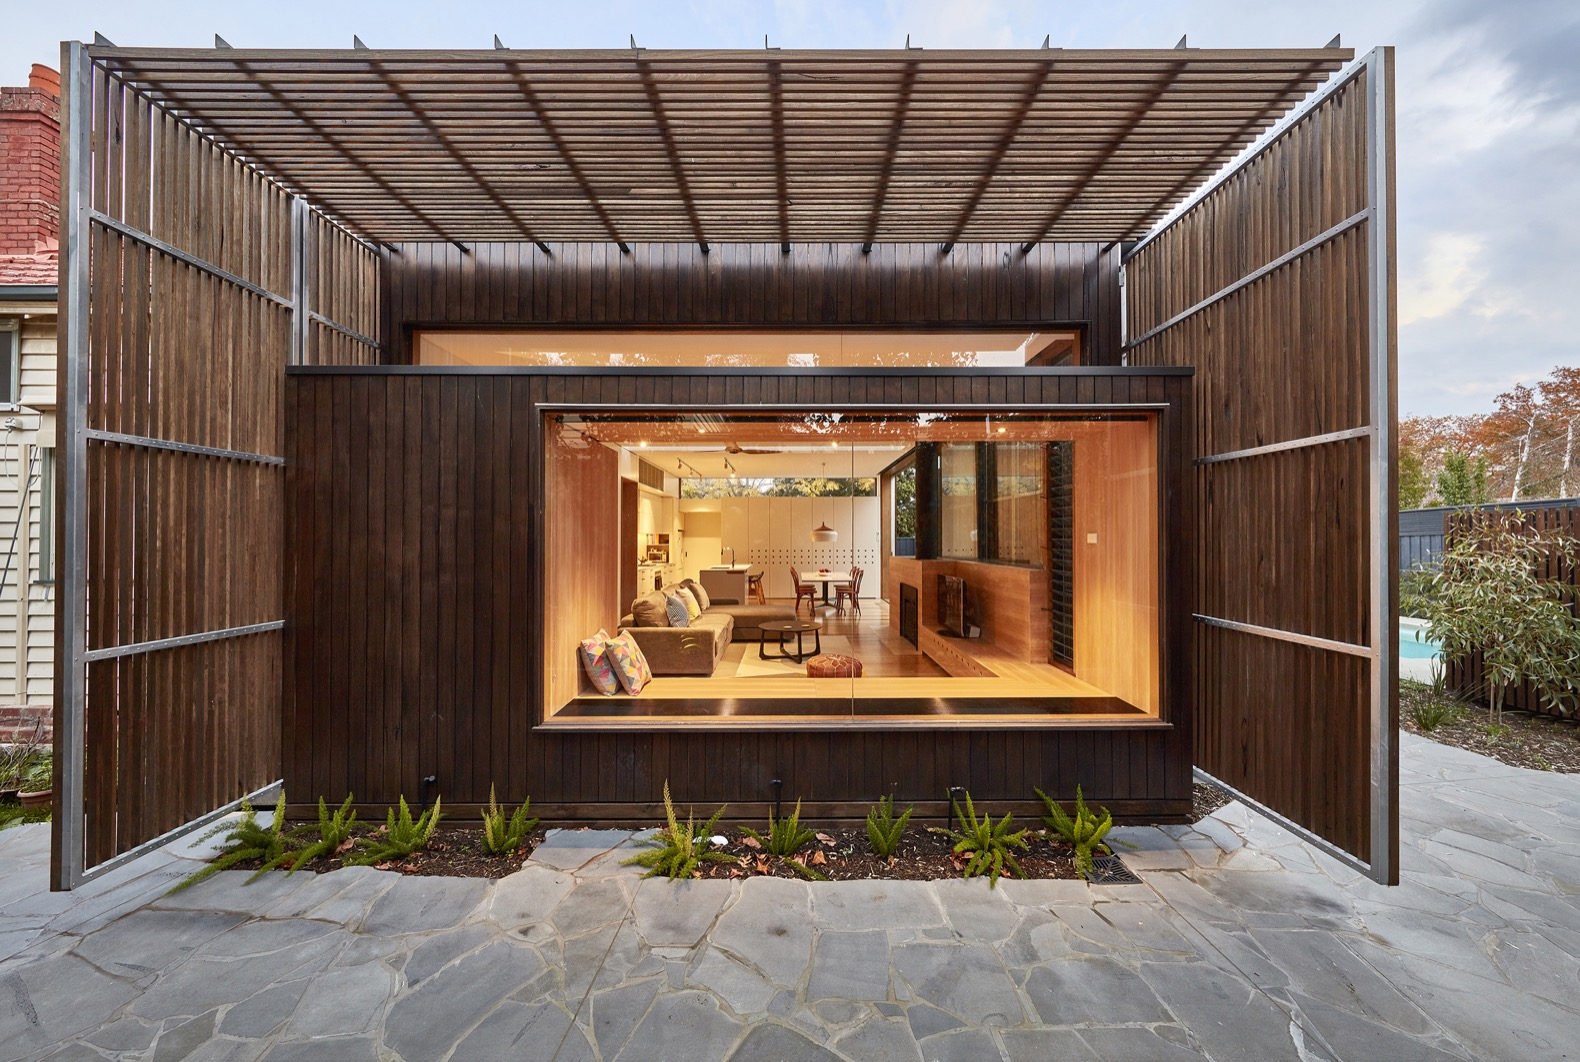 The Screen House comfortably and sustainably connects with the outdoors